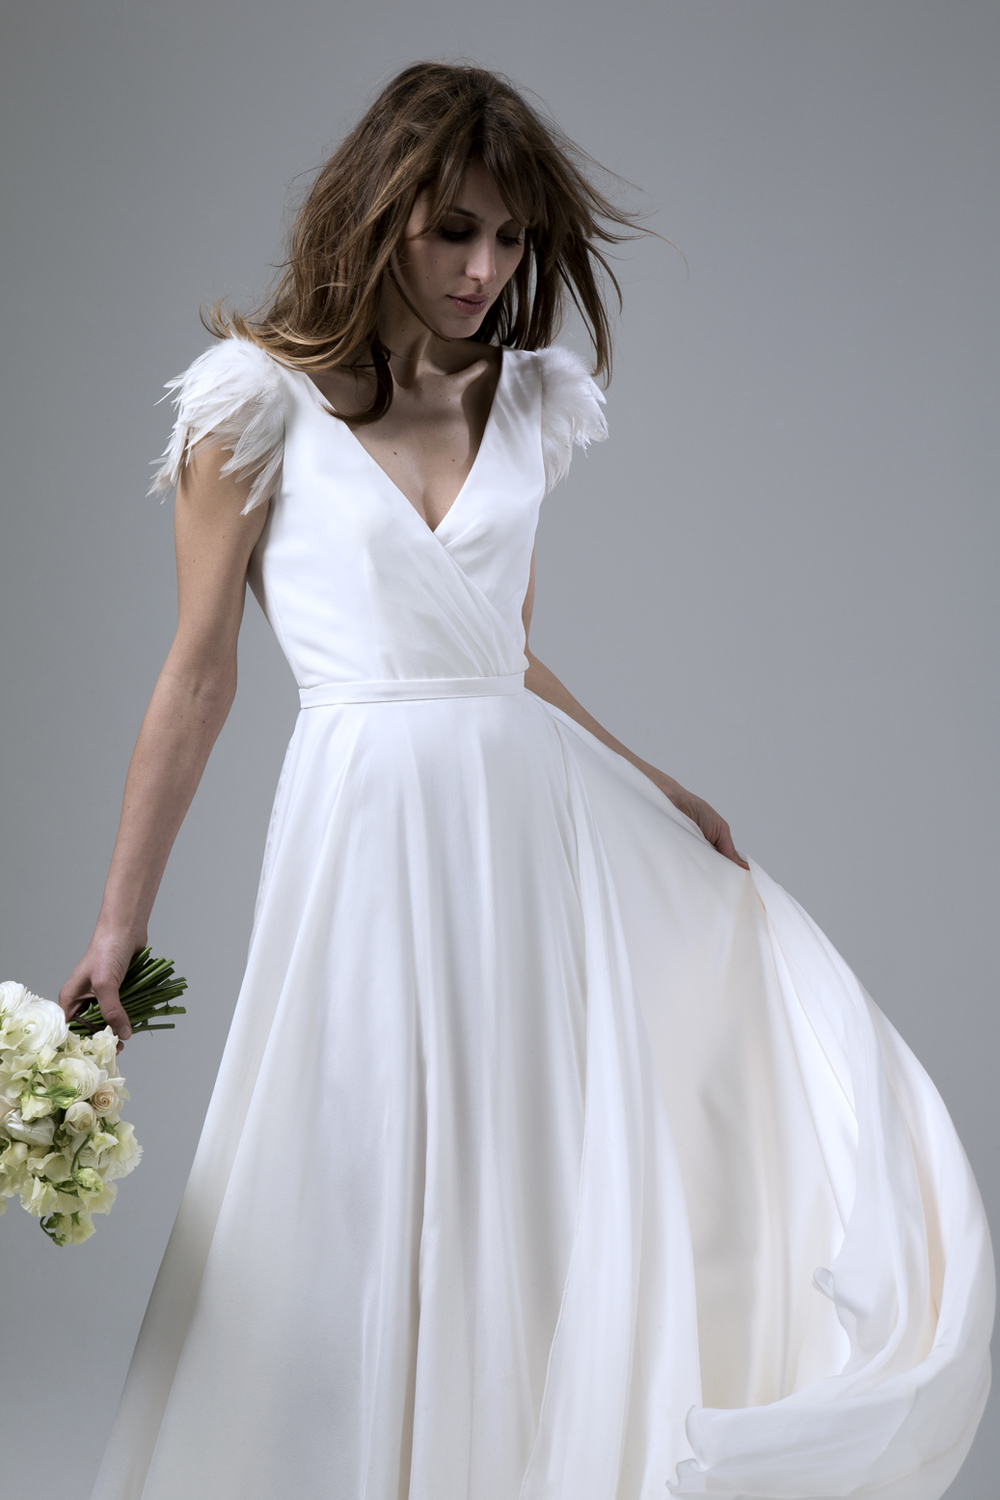 DAISY silk chiffon wedding dress with deep V back and feathred cap sleeves by Halfpenny London